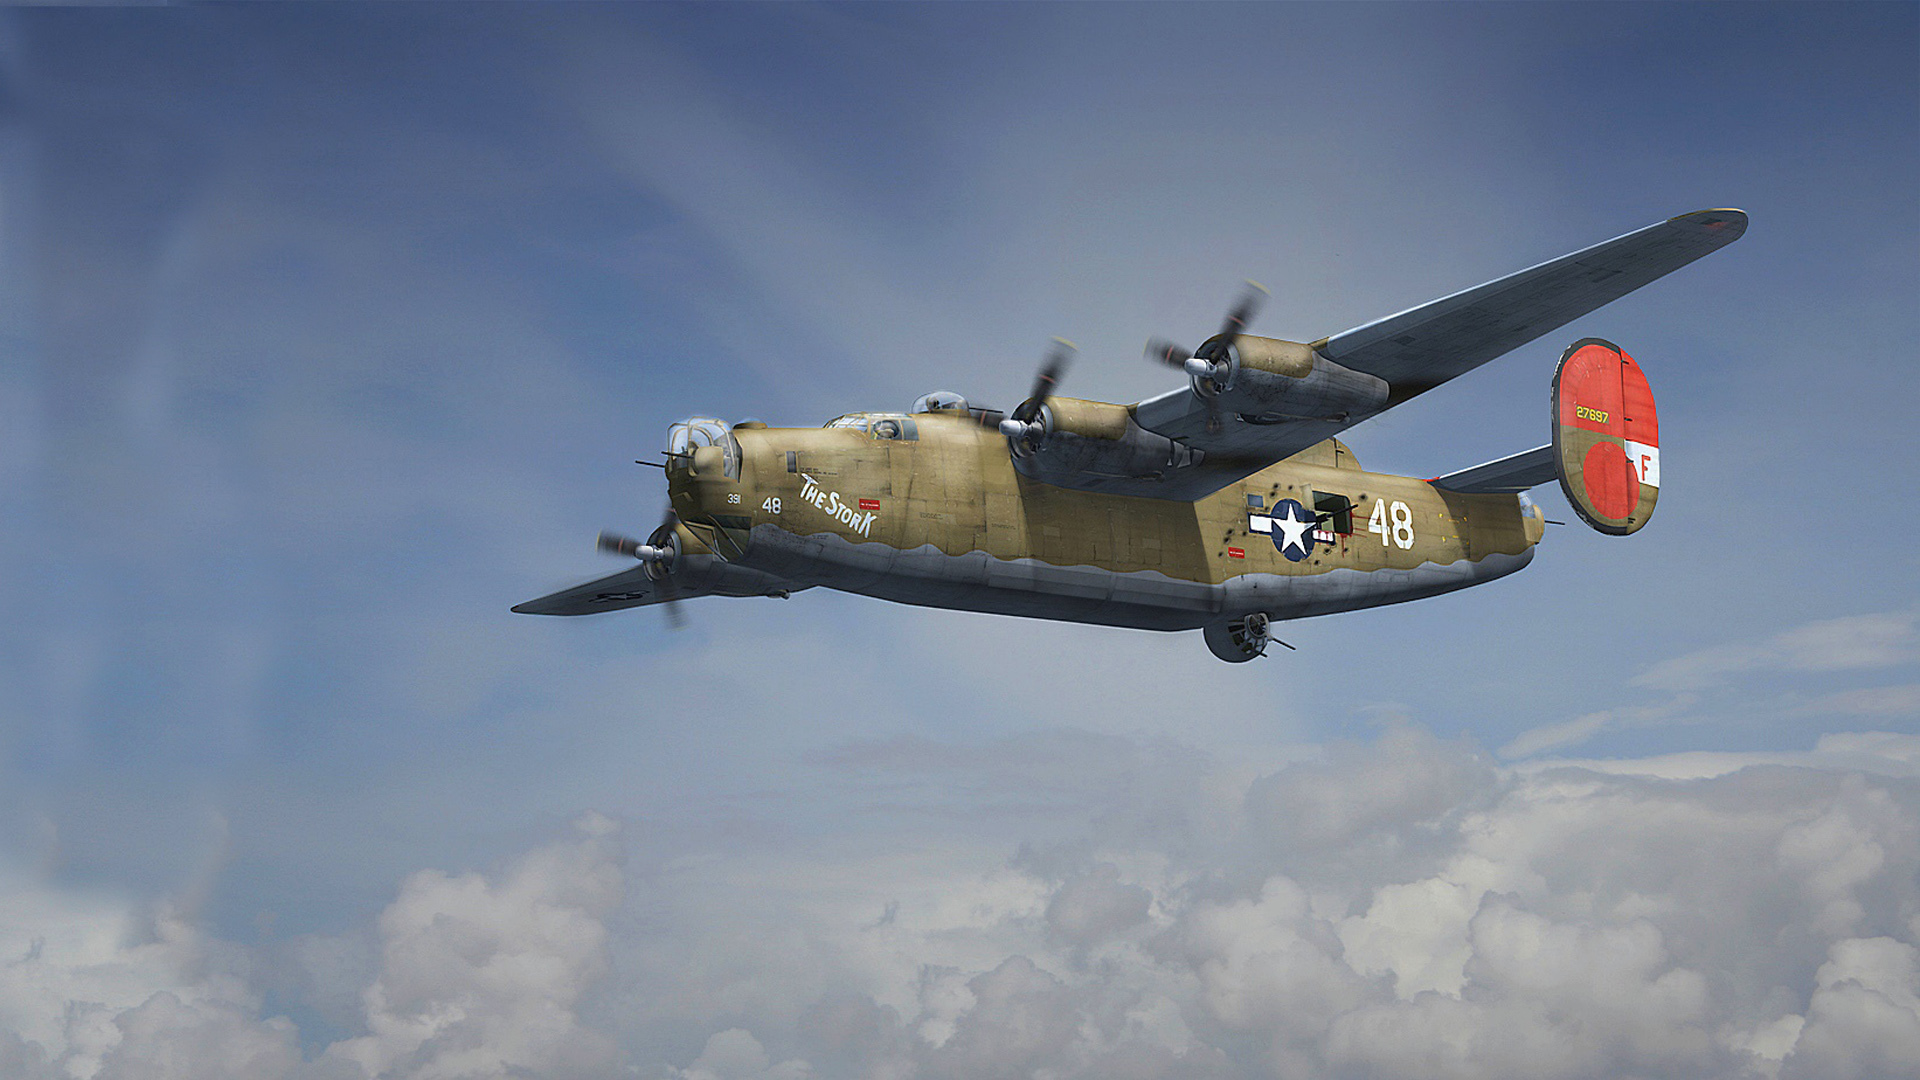 1920x1080 - Consolidated B-24 Liberator Wallpapers 5